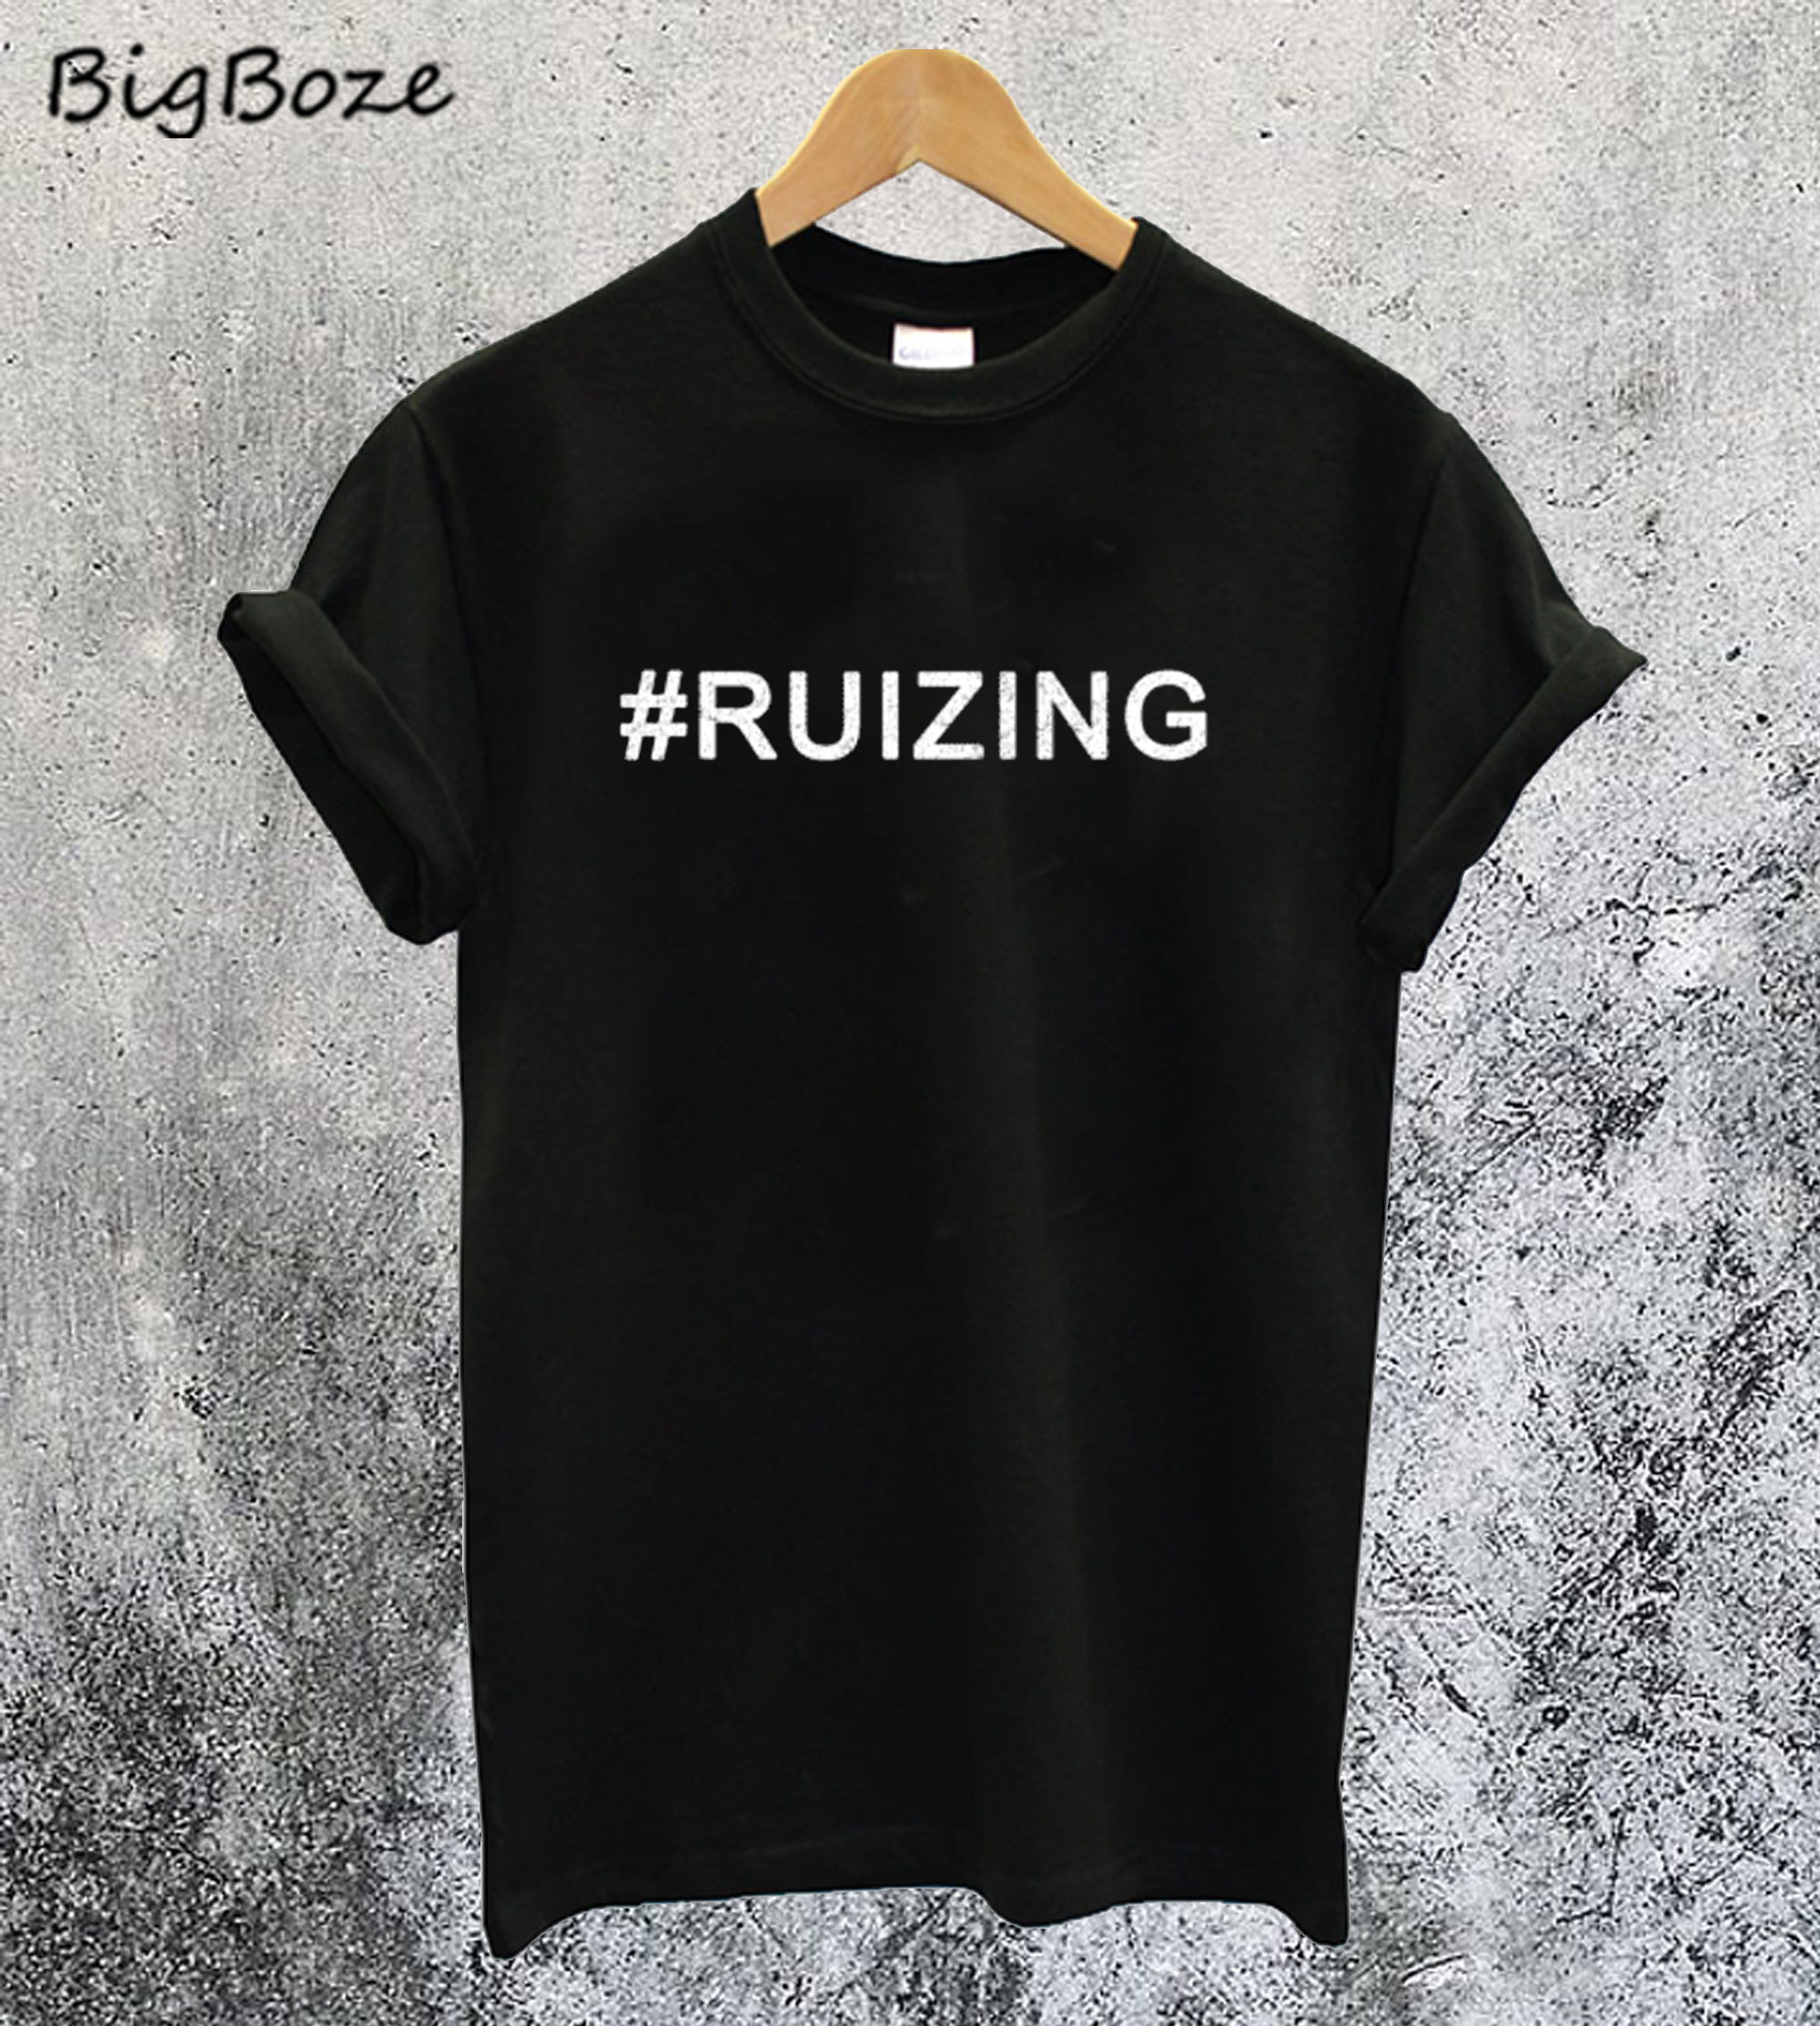 Hastag Ruizing T-Shirt